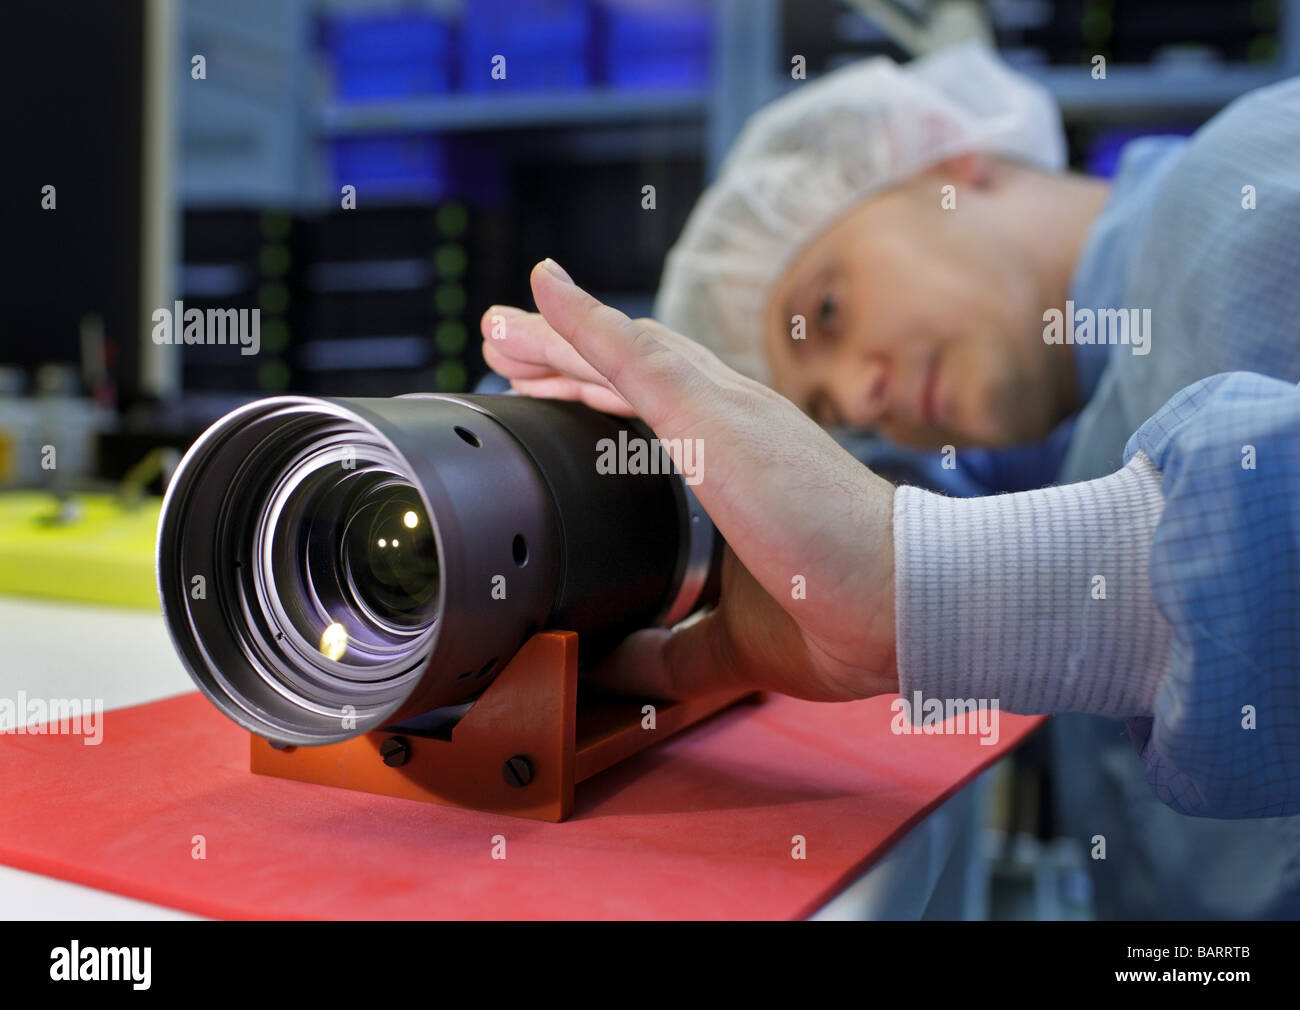 Employee with a camera lens at Carl Zeiss AG Jena Germany - Stock Image